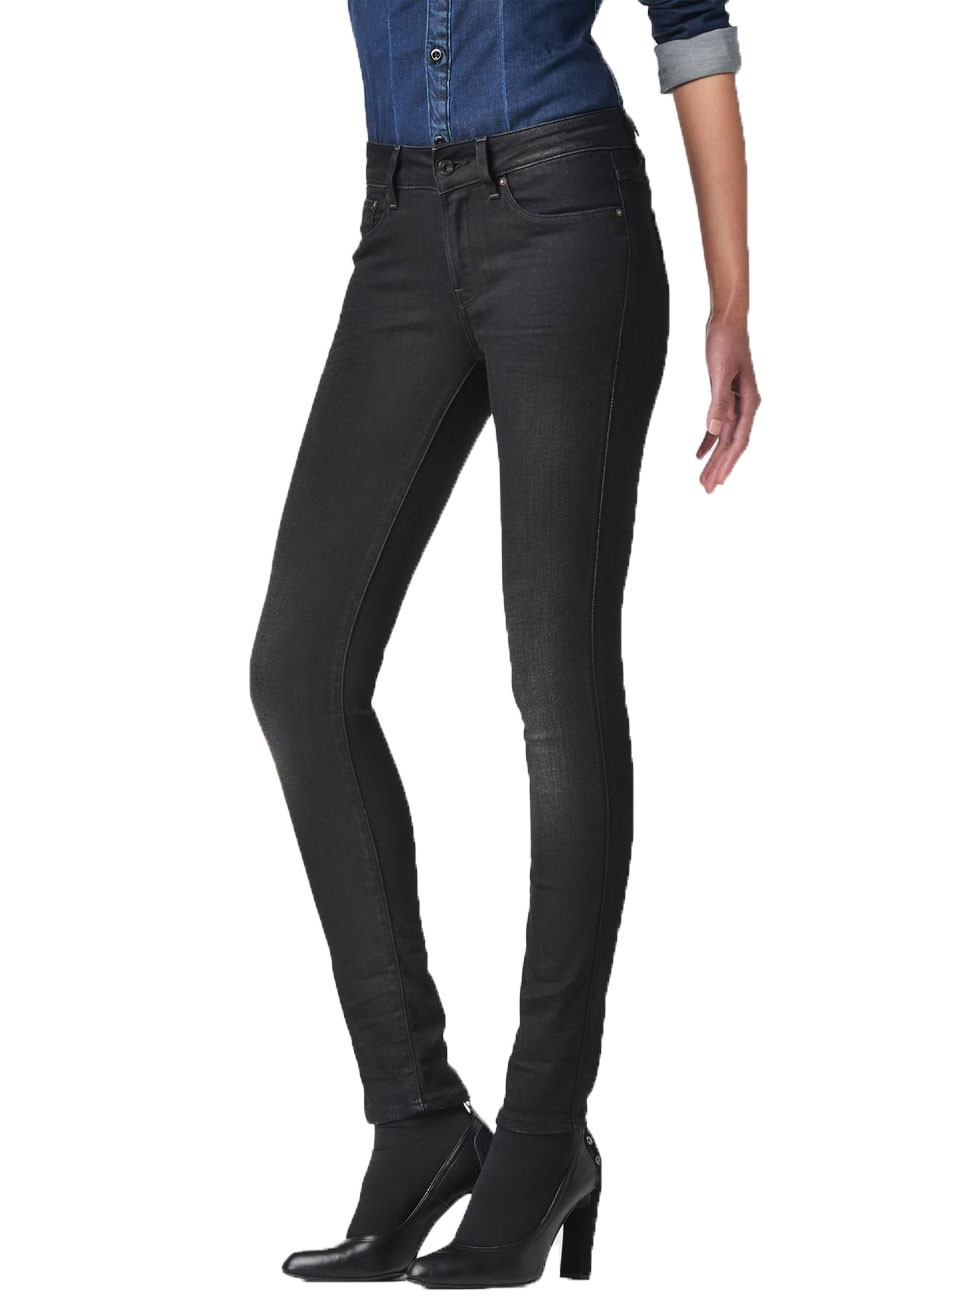 g star damen jeans 3301 contour damen high waist skinny. Black Bedroom Furniture Sets. Home Design Ideas